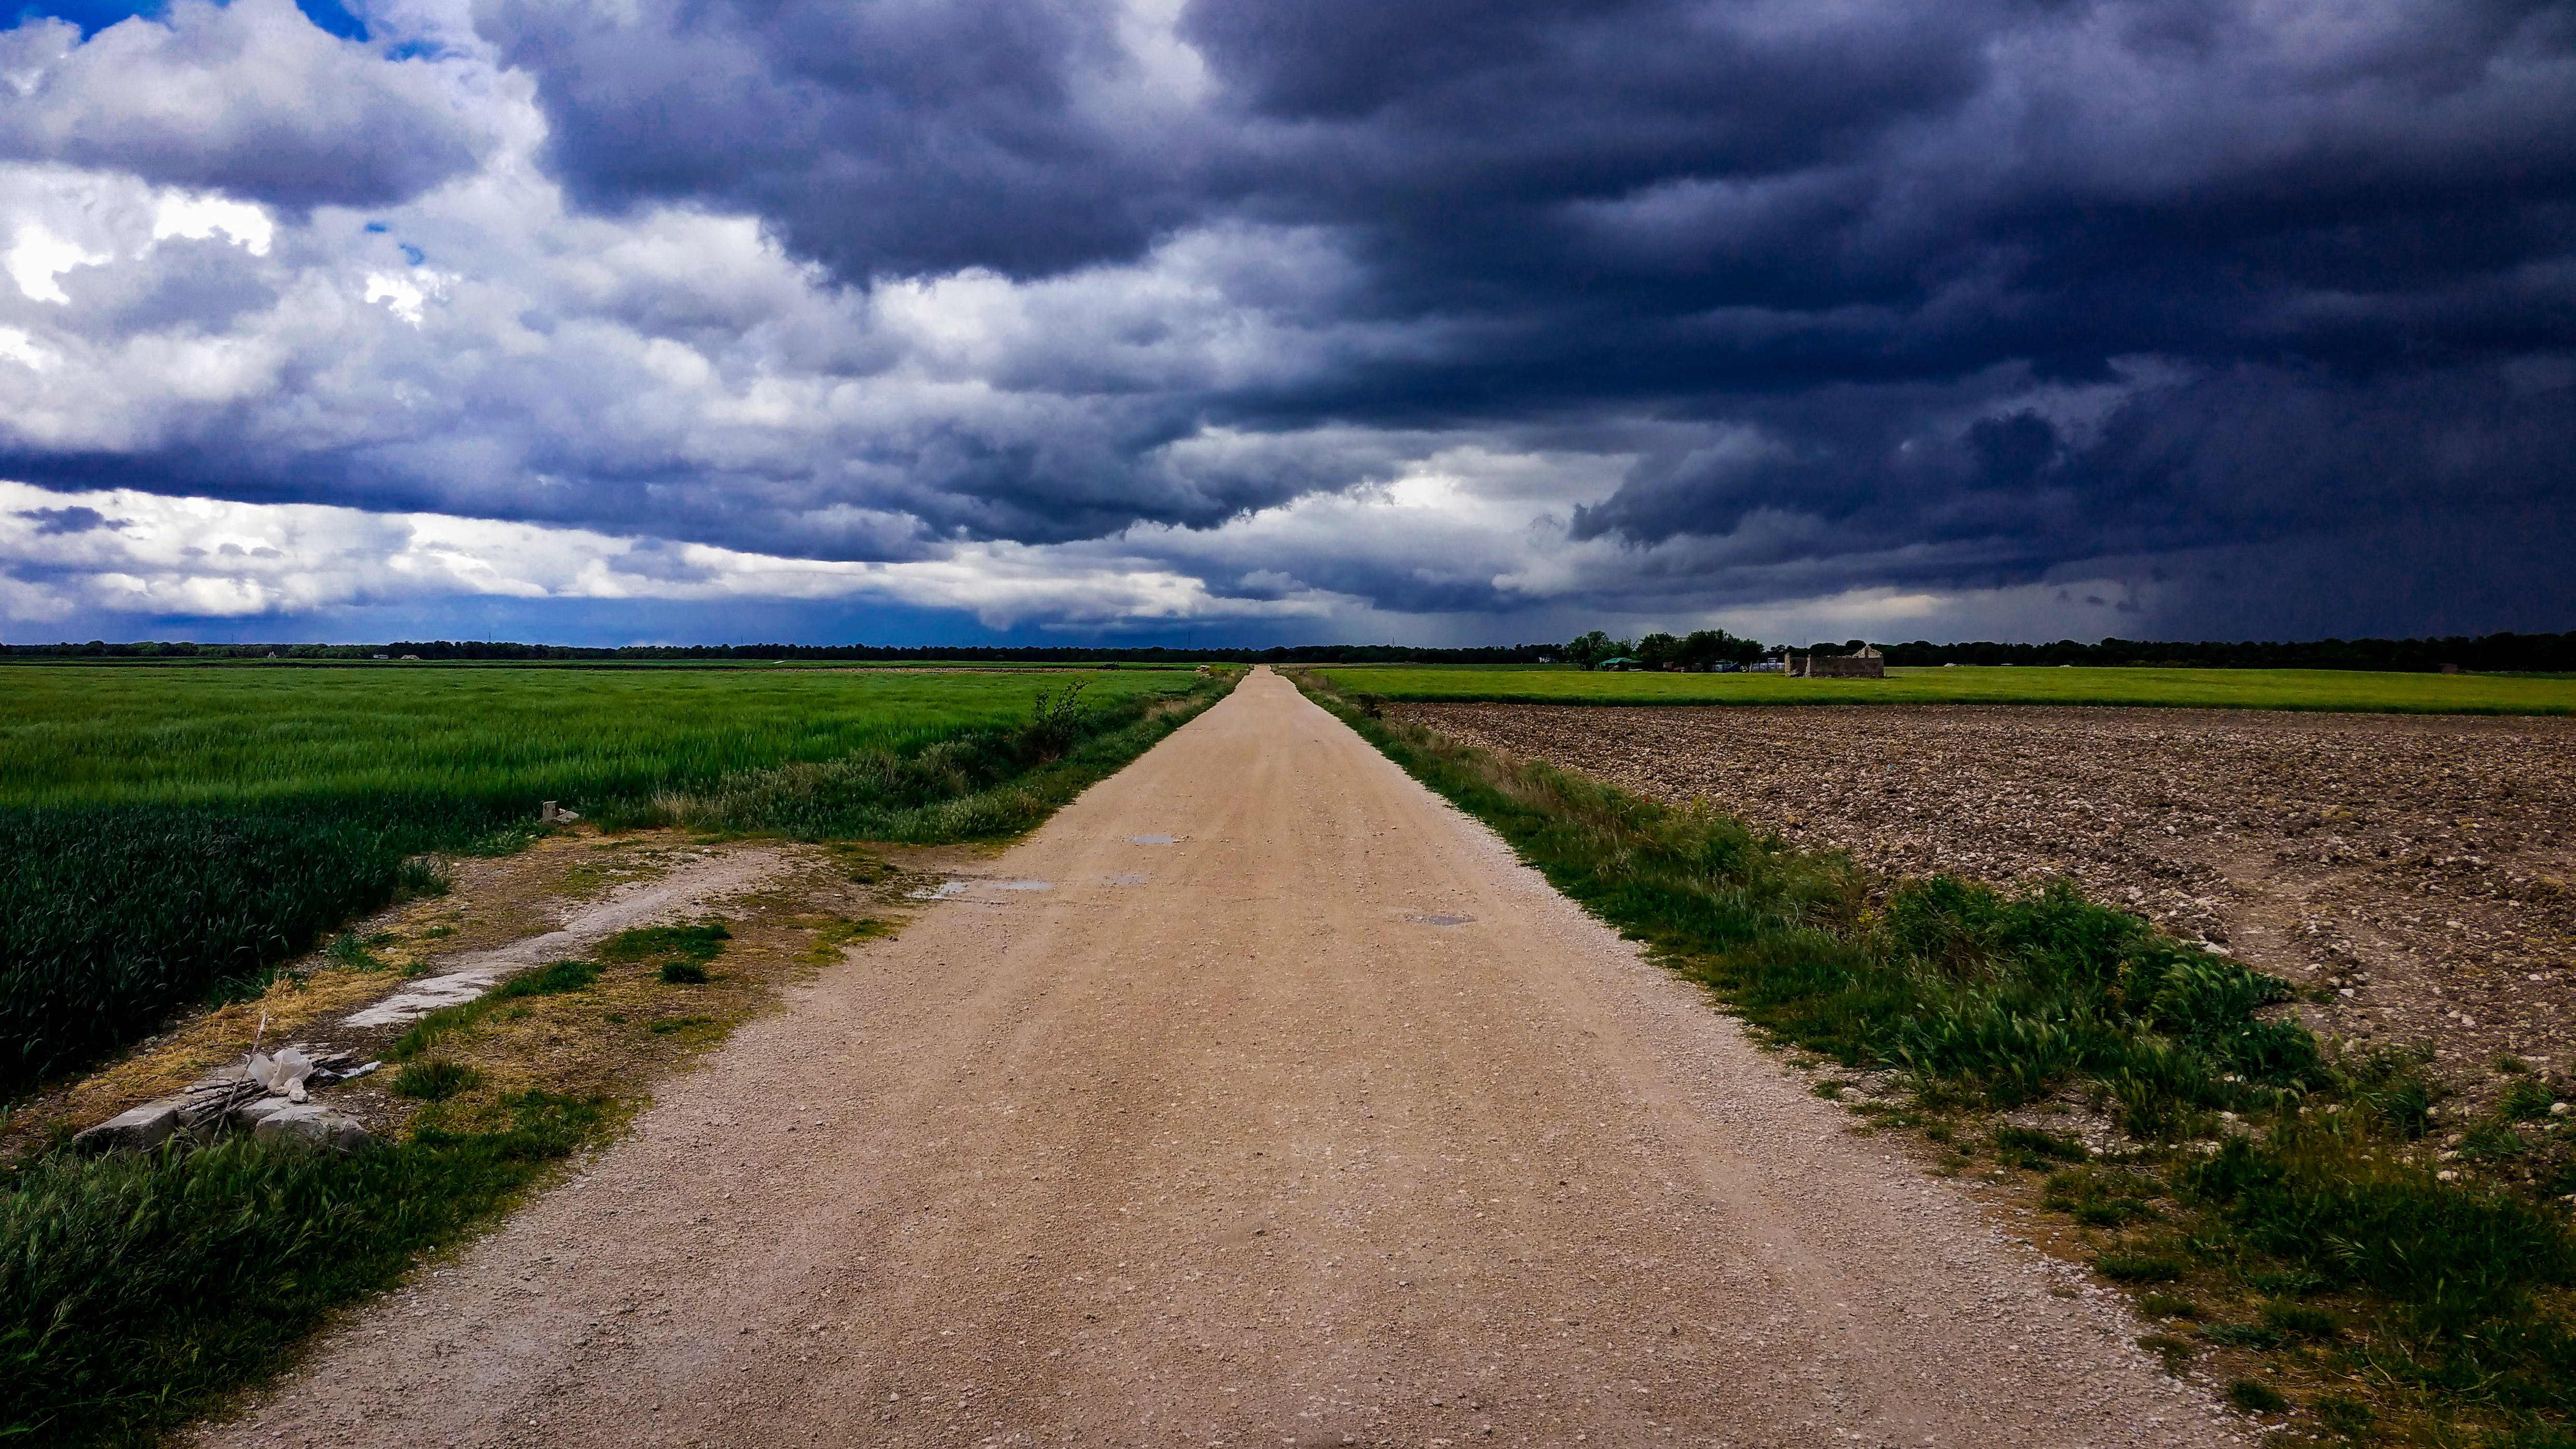 Dirt Road Surrounded With Green Field Under Cloudy Sky  U00b7 Free Stock Photo